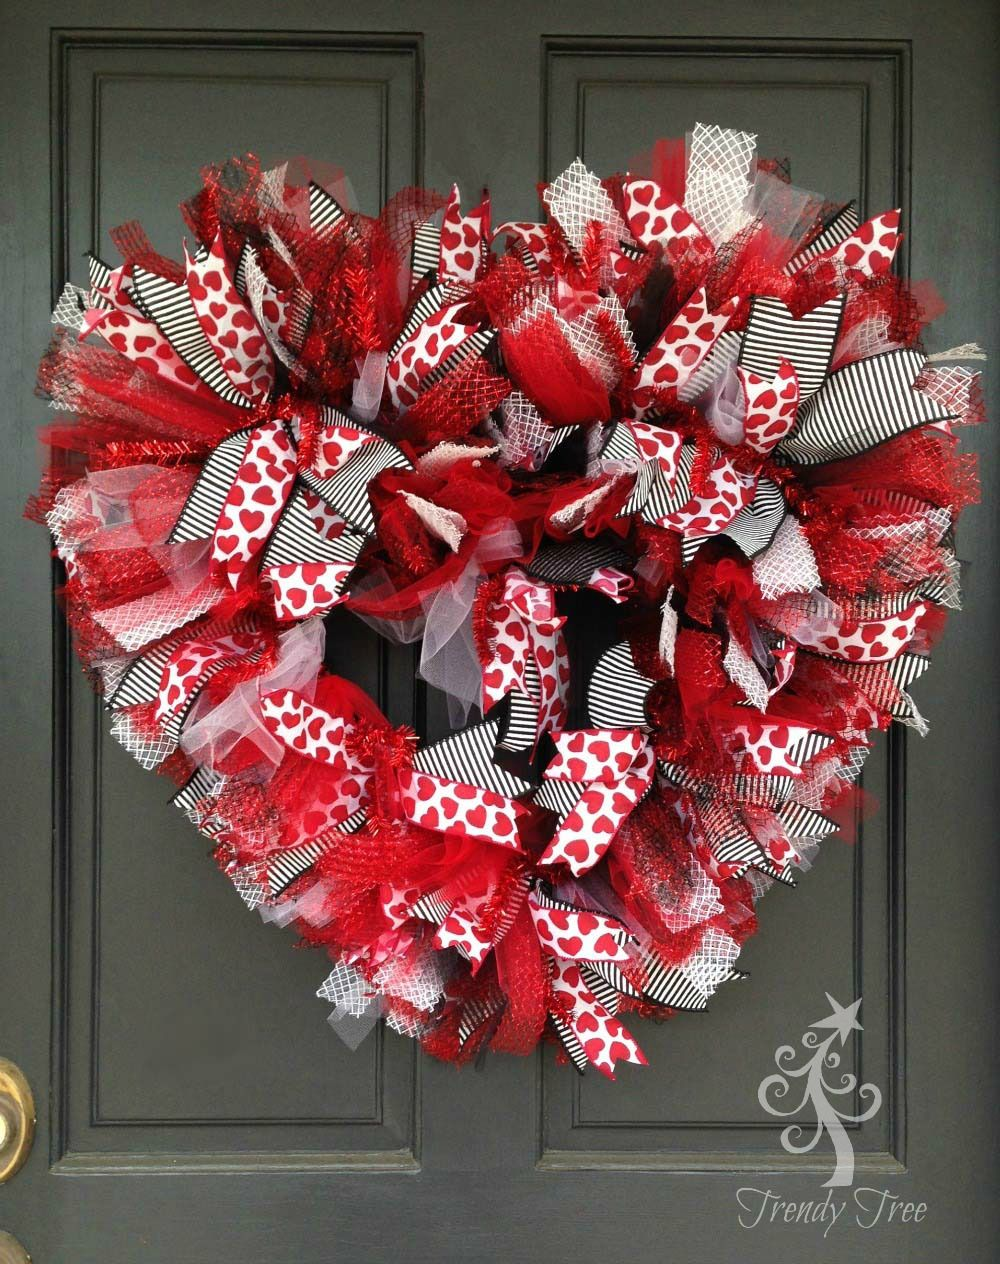 Superior Valentine Wreath Part - 1: 1/17/16 Hereu0027s A Easy Tutorial For A Basic Valentine Wreath. Itu0027s